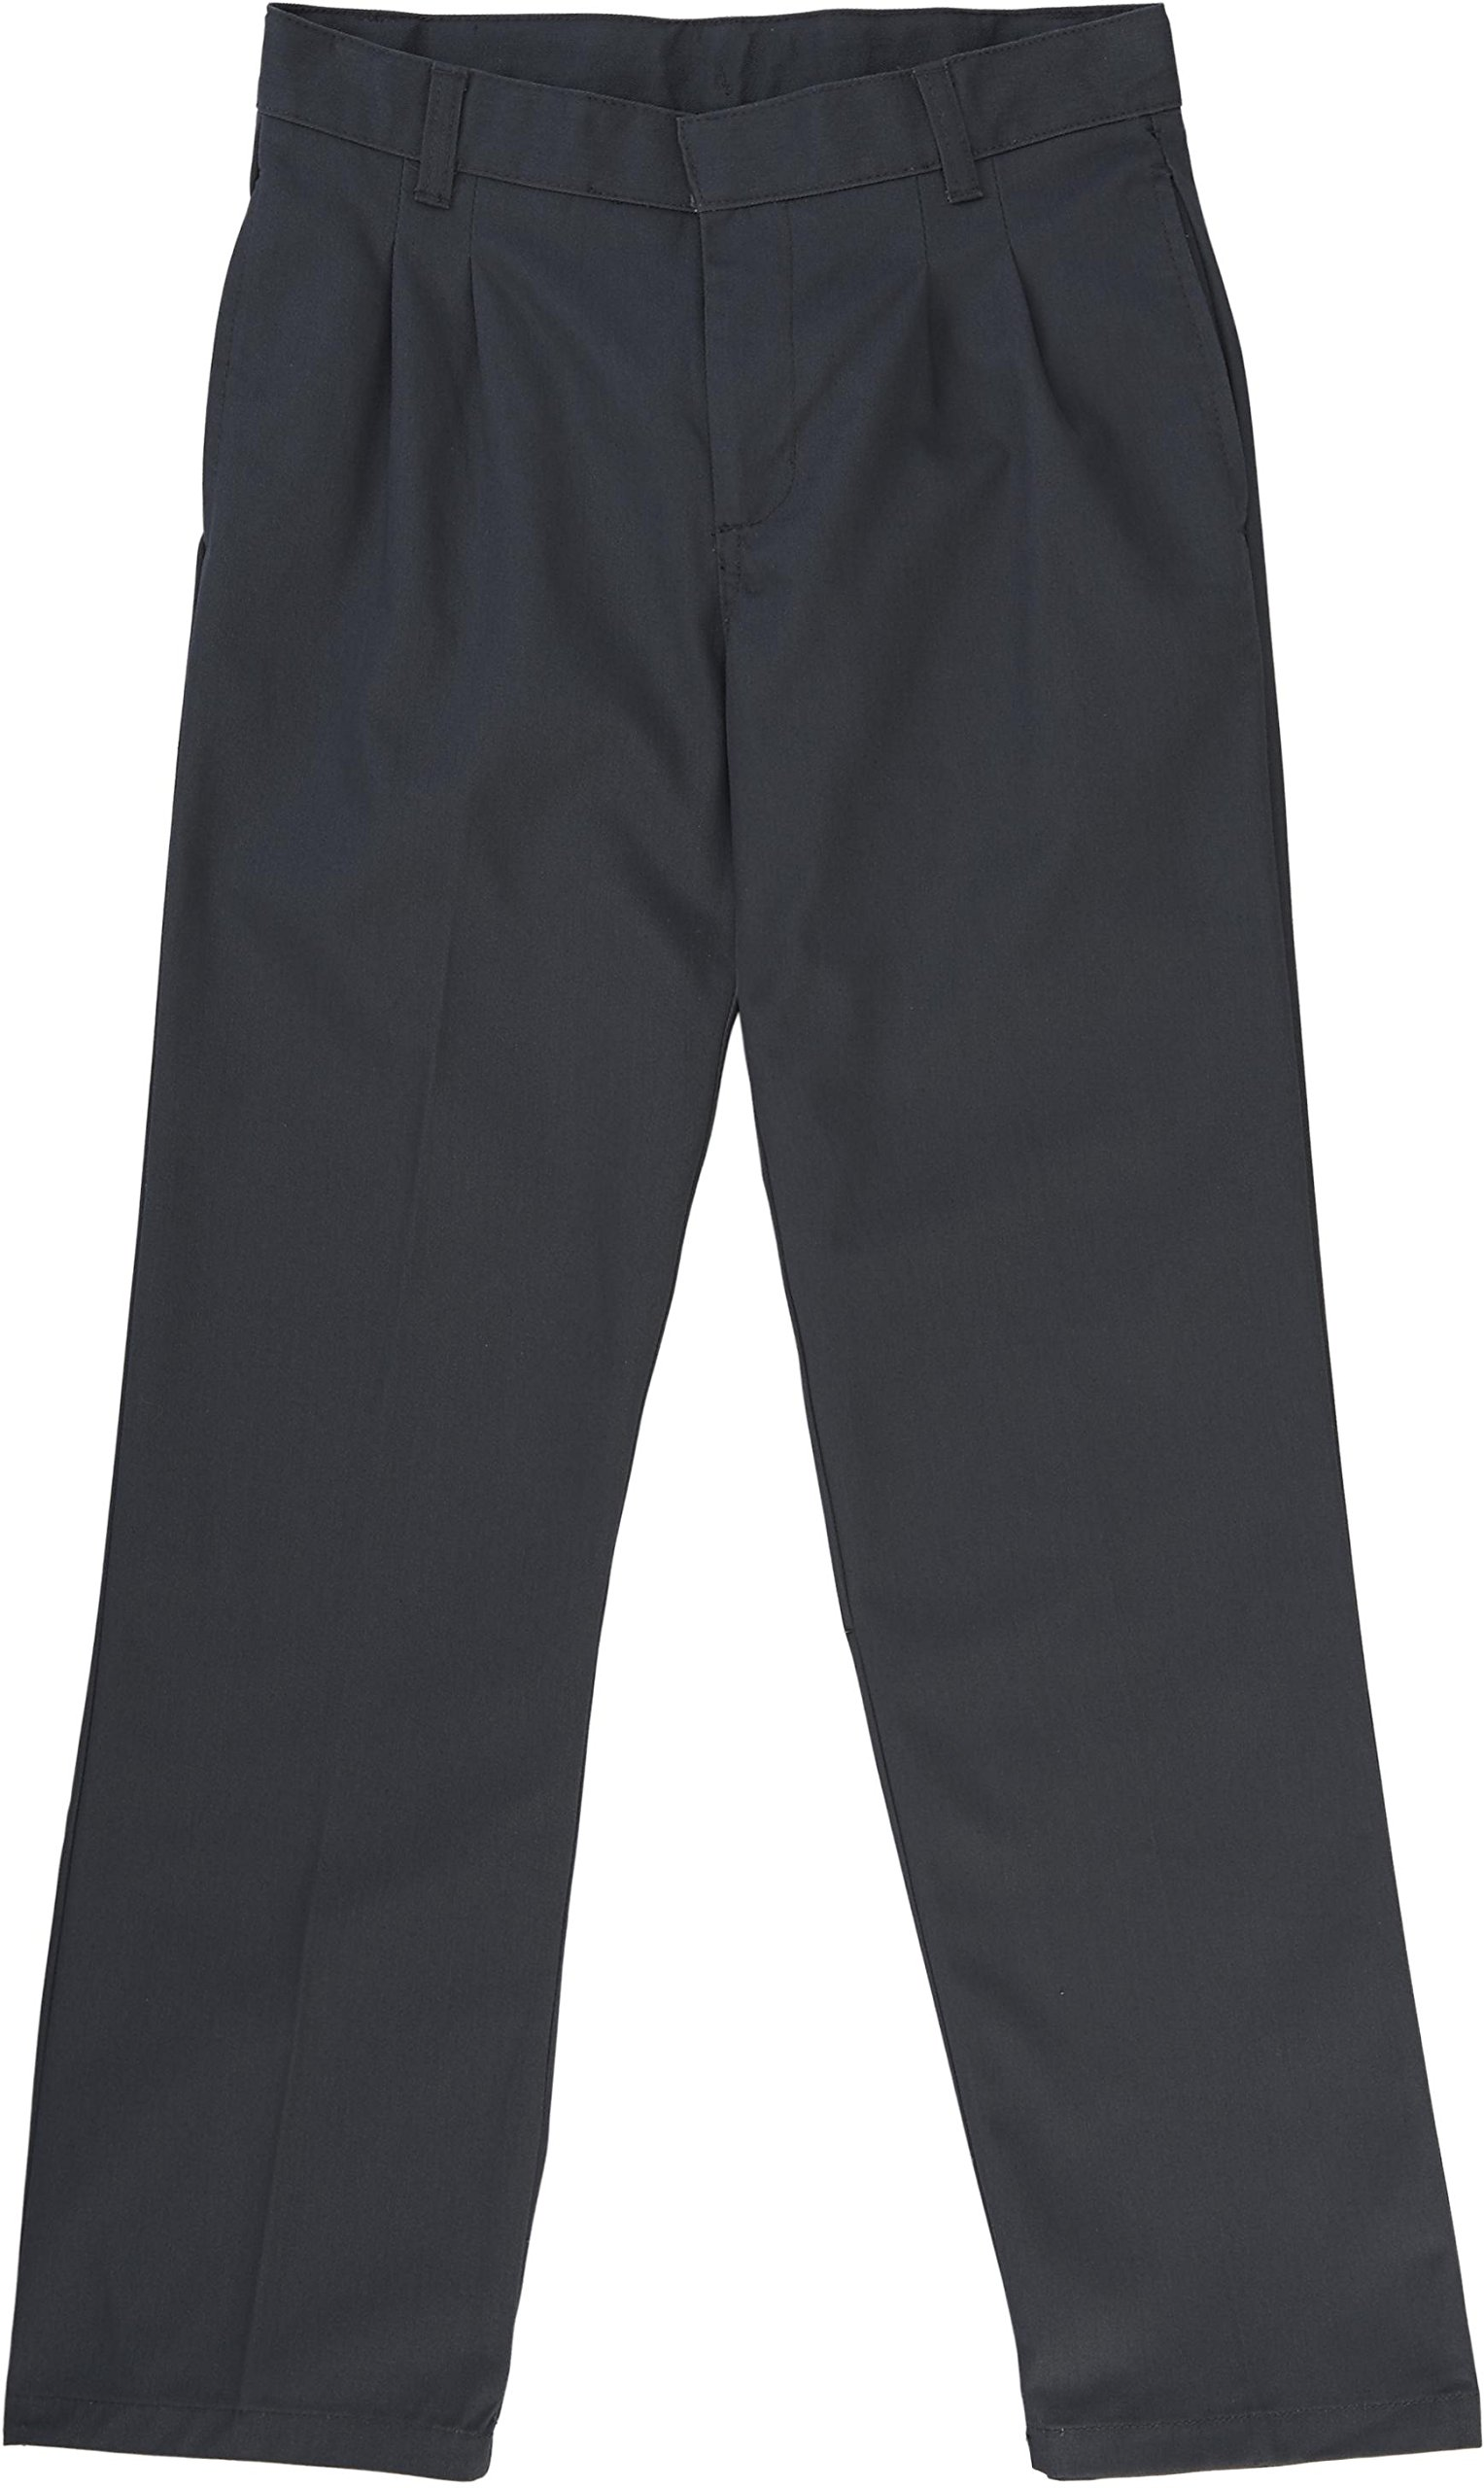 French Toast School Uniform Boys Adjustable Waist Pleated Double Knee Pants, Gray, 18 by French Toast